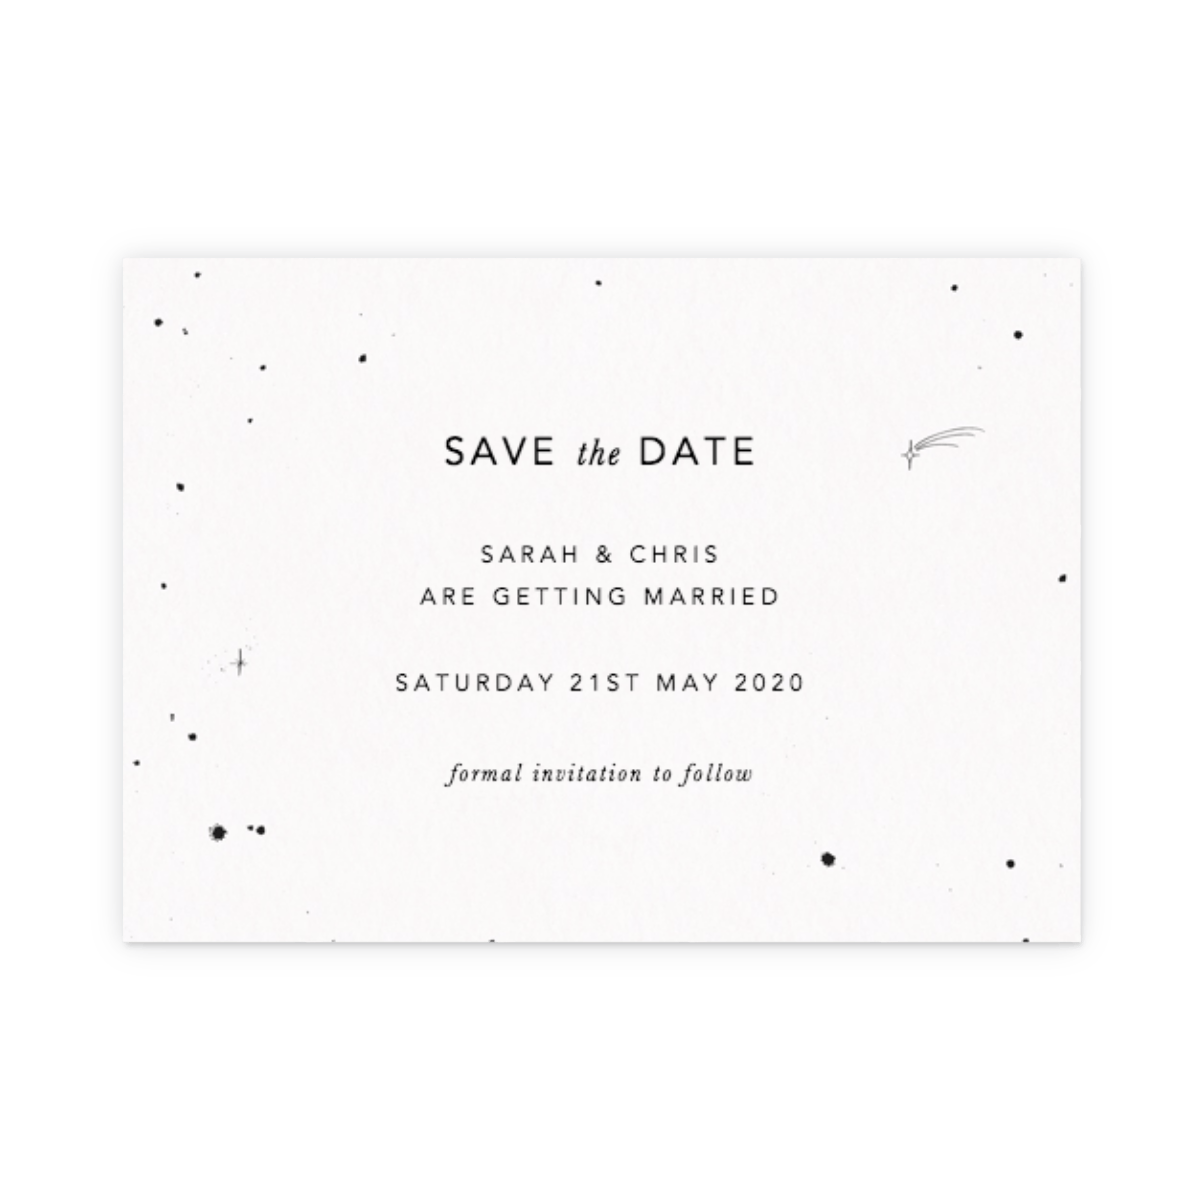 Https%3a%2f%2fwww.papier.com%2fproduct image%2f24884%2f42%2fsave the date speckle 6206 back 1512040884.png?ixlib=rb 1.1